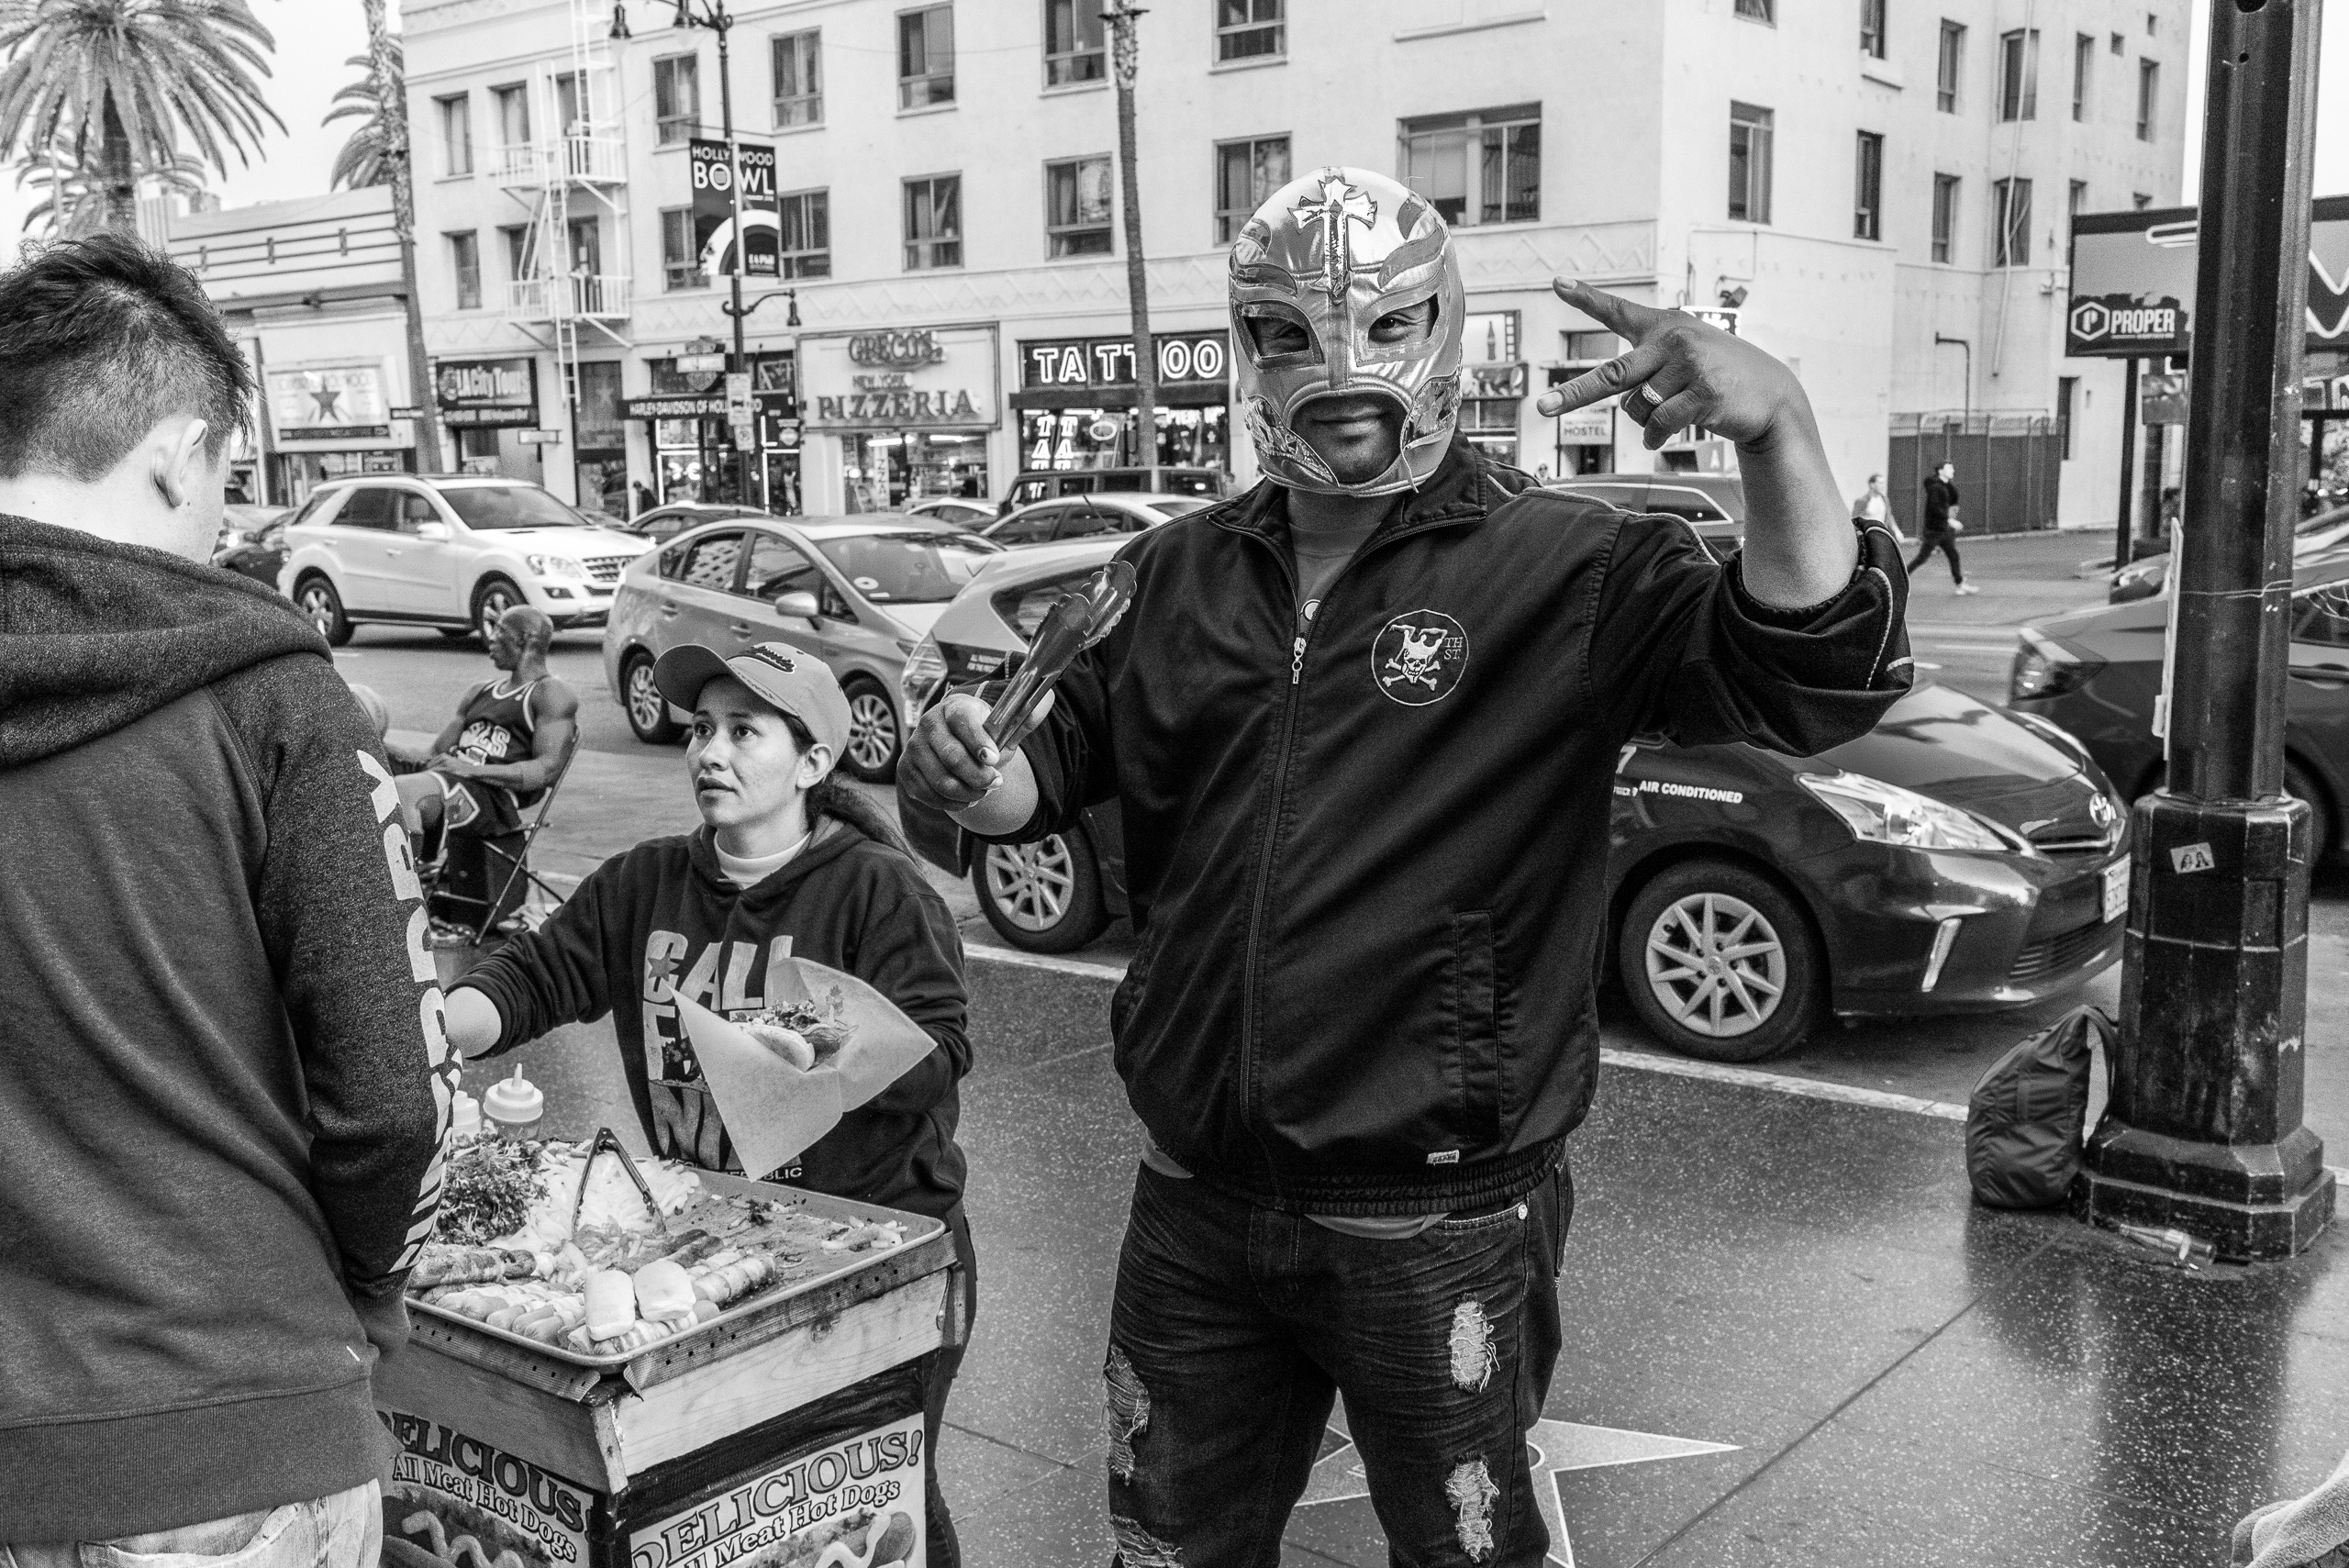 a hot dog vendor on Hollywood Blvd holds grill tongs and wears a Lucha Libre mask